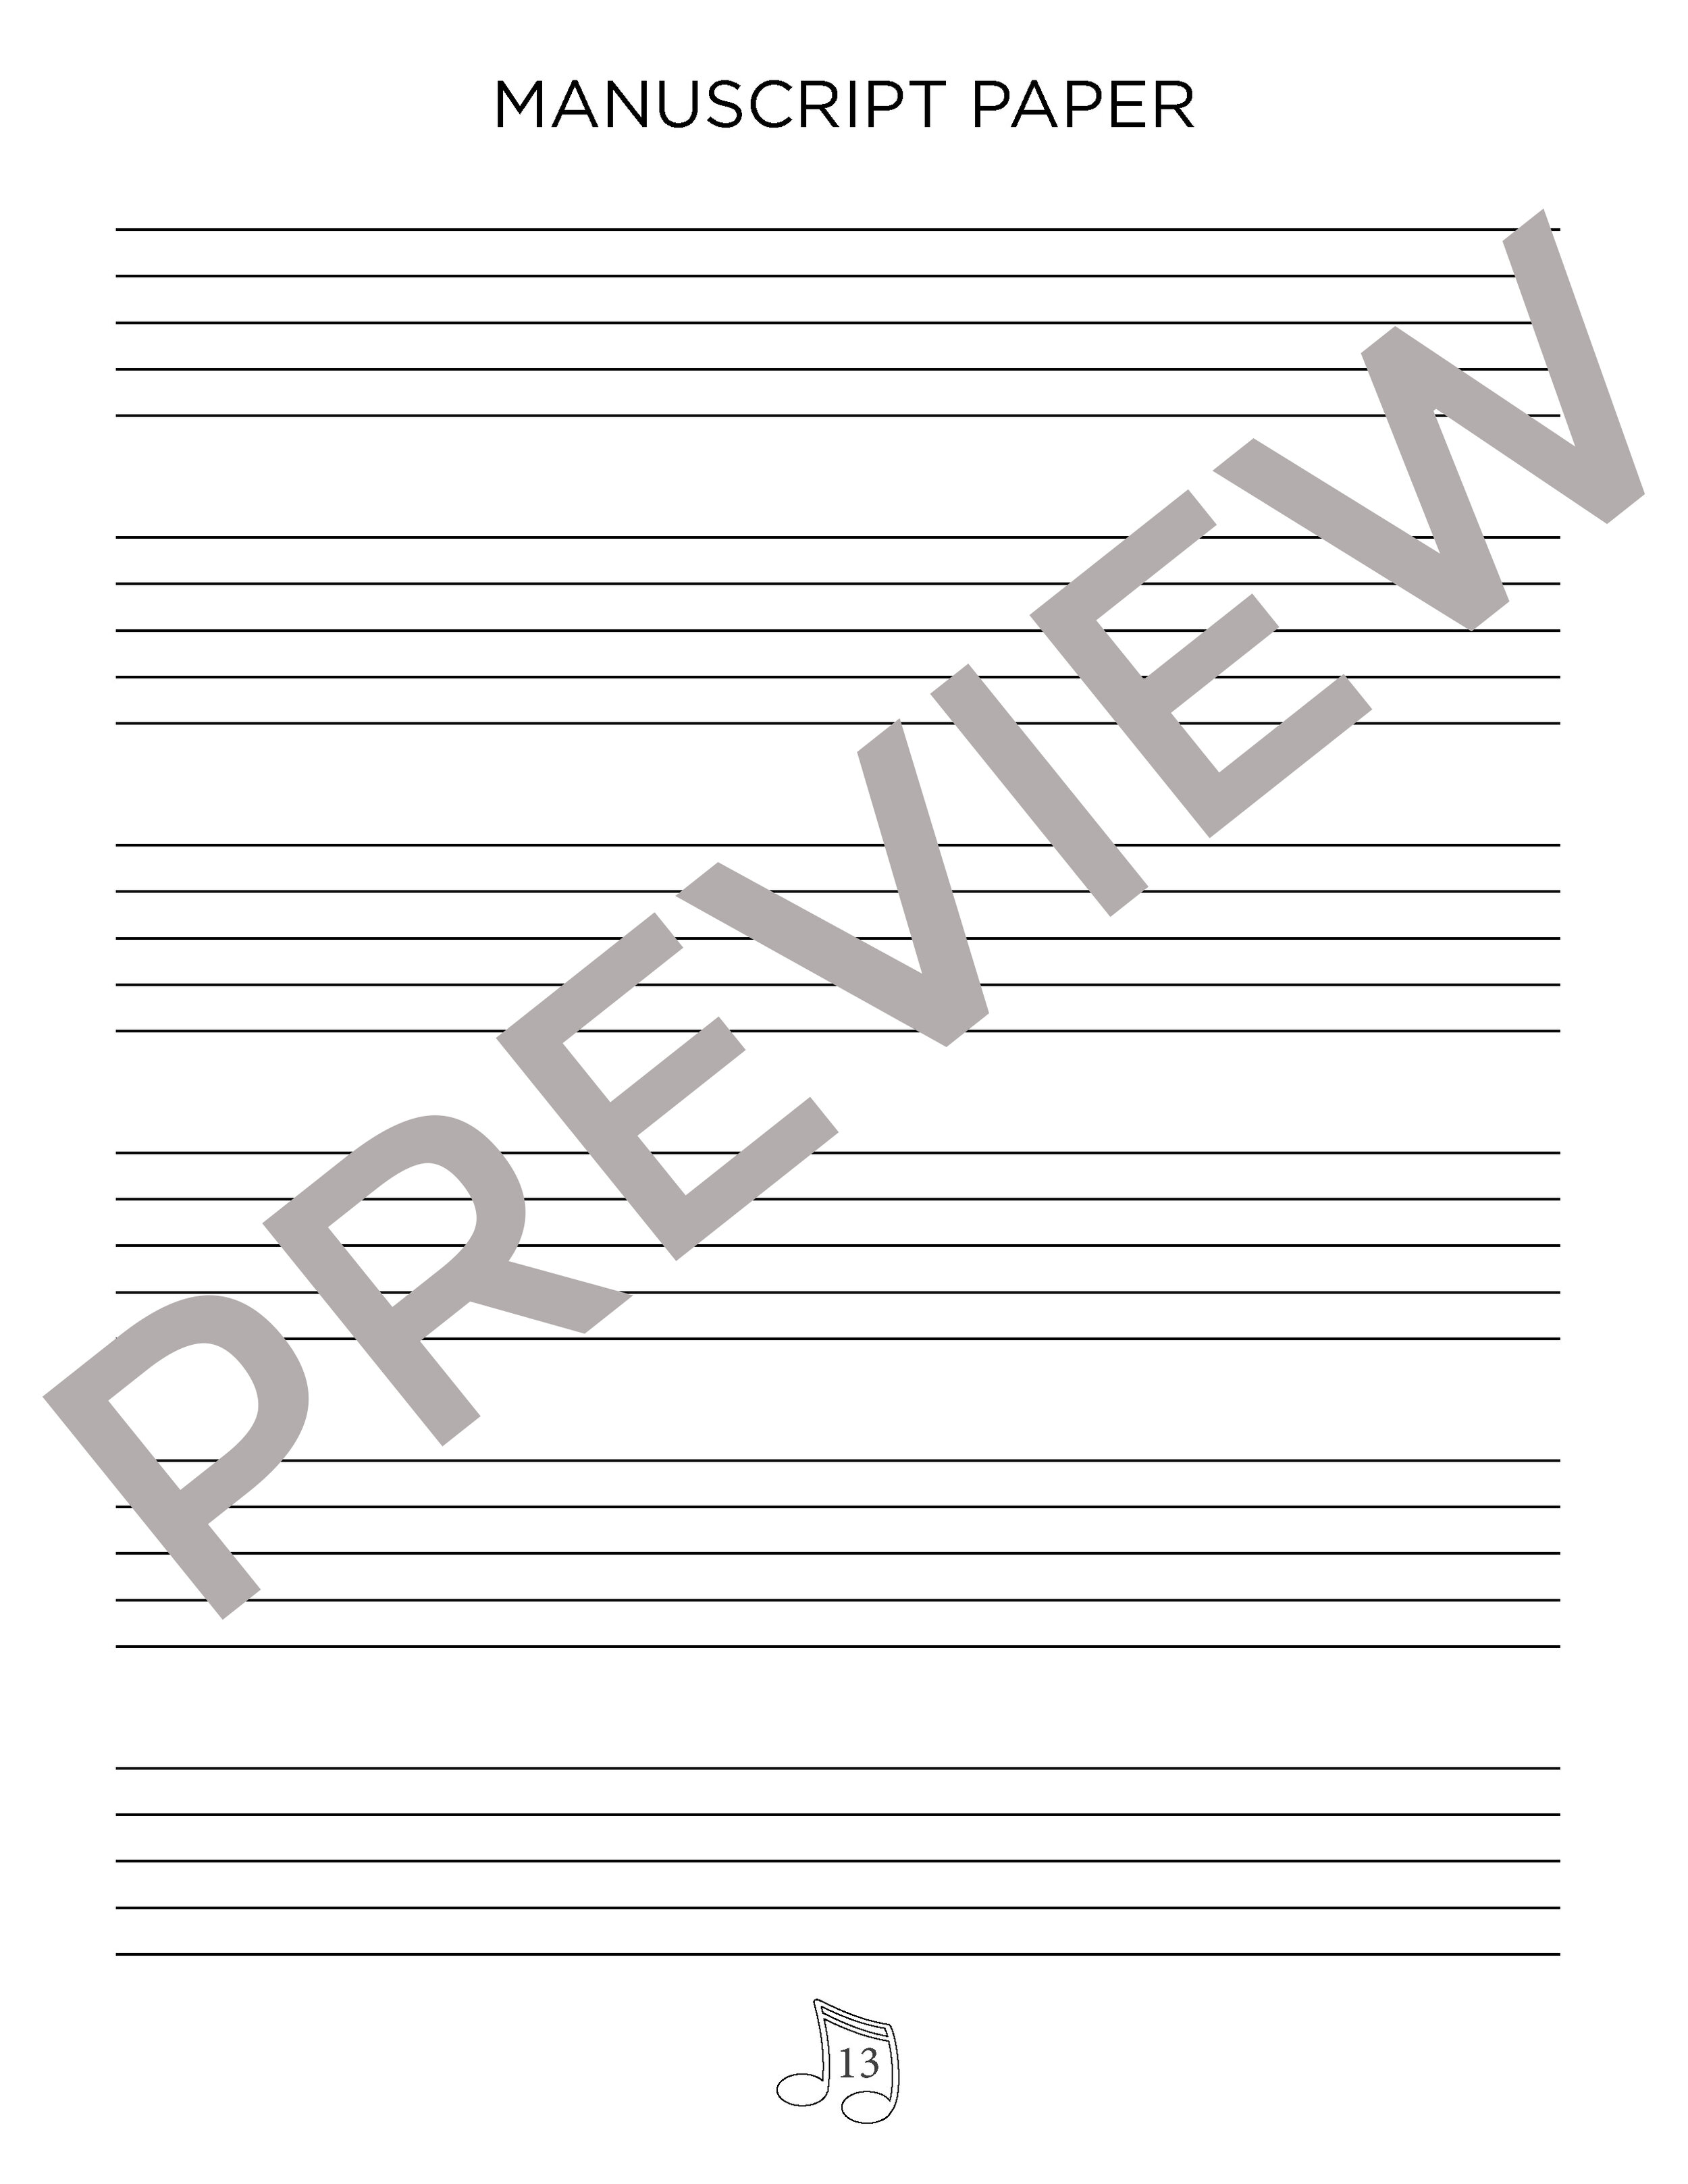 Manuscript Pages - There are exactly 8 pages of manuscript paper. Pages 13 - 17 give exactly enough staves to create 15 grand staves to correspond to 15 key signatures (including enharmonic keys). There are 4 additional pages of larger print manuscript paper for younger students who need practice with landmark notes or music symbols.